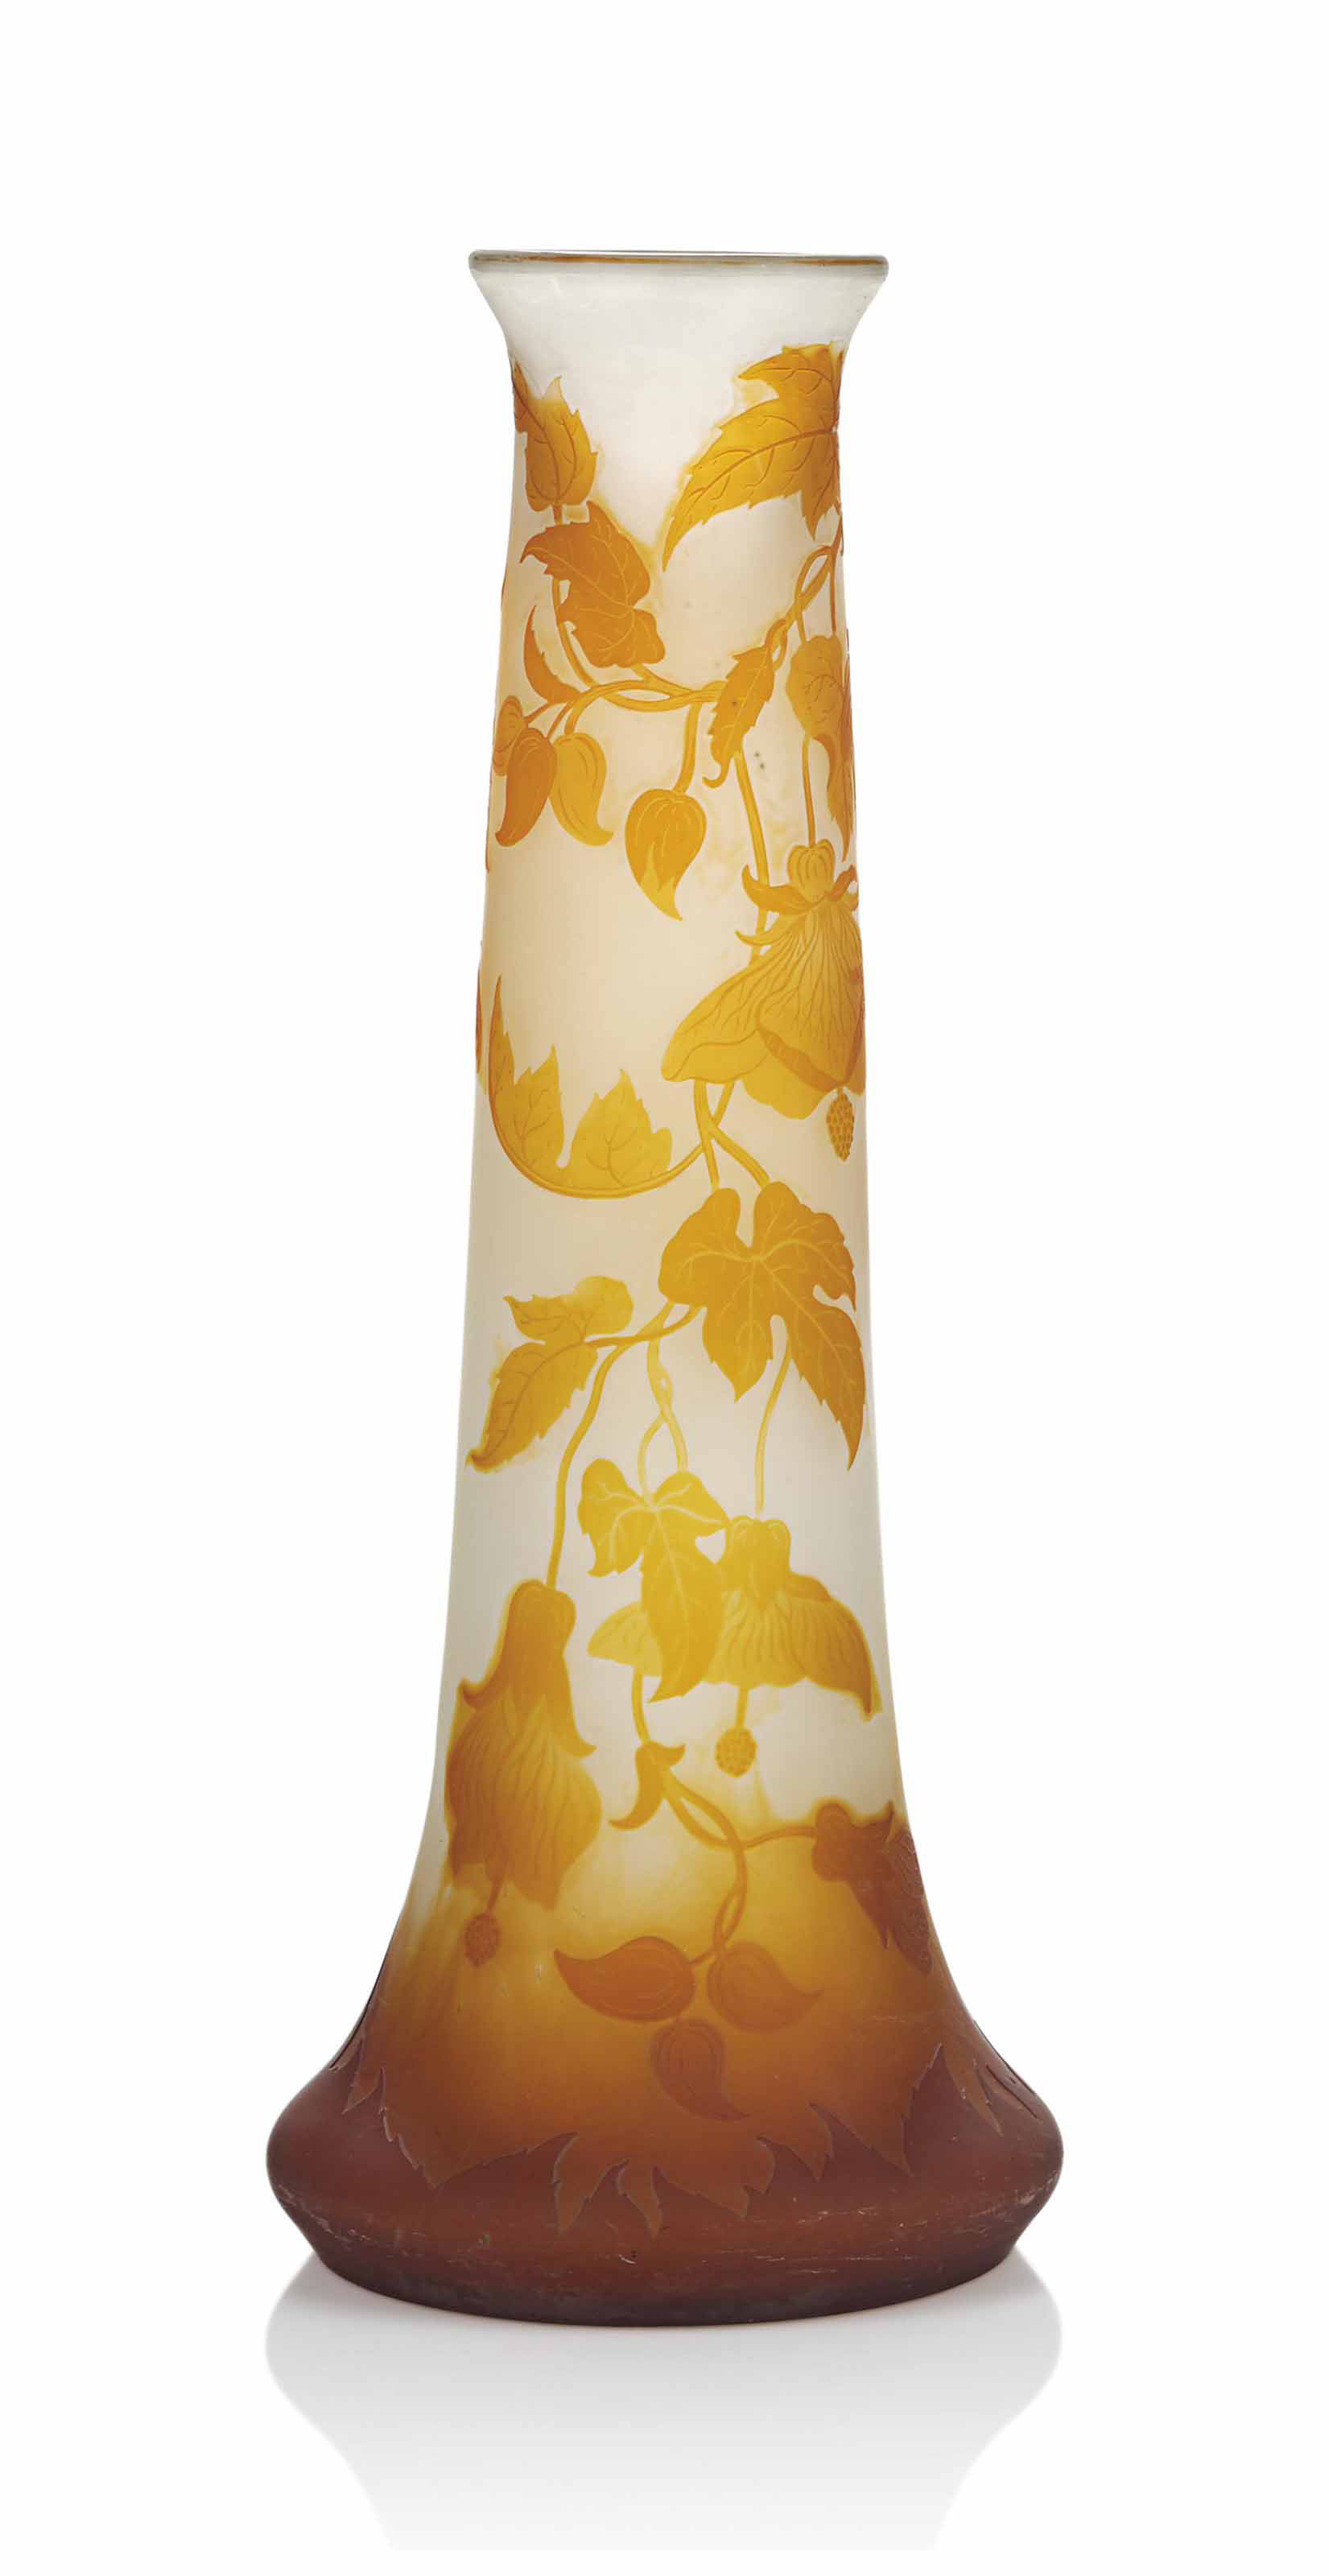 A LARGE GALLE CAMEO GLASS VASE